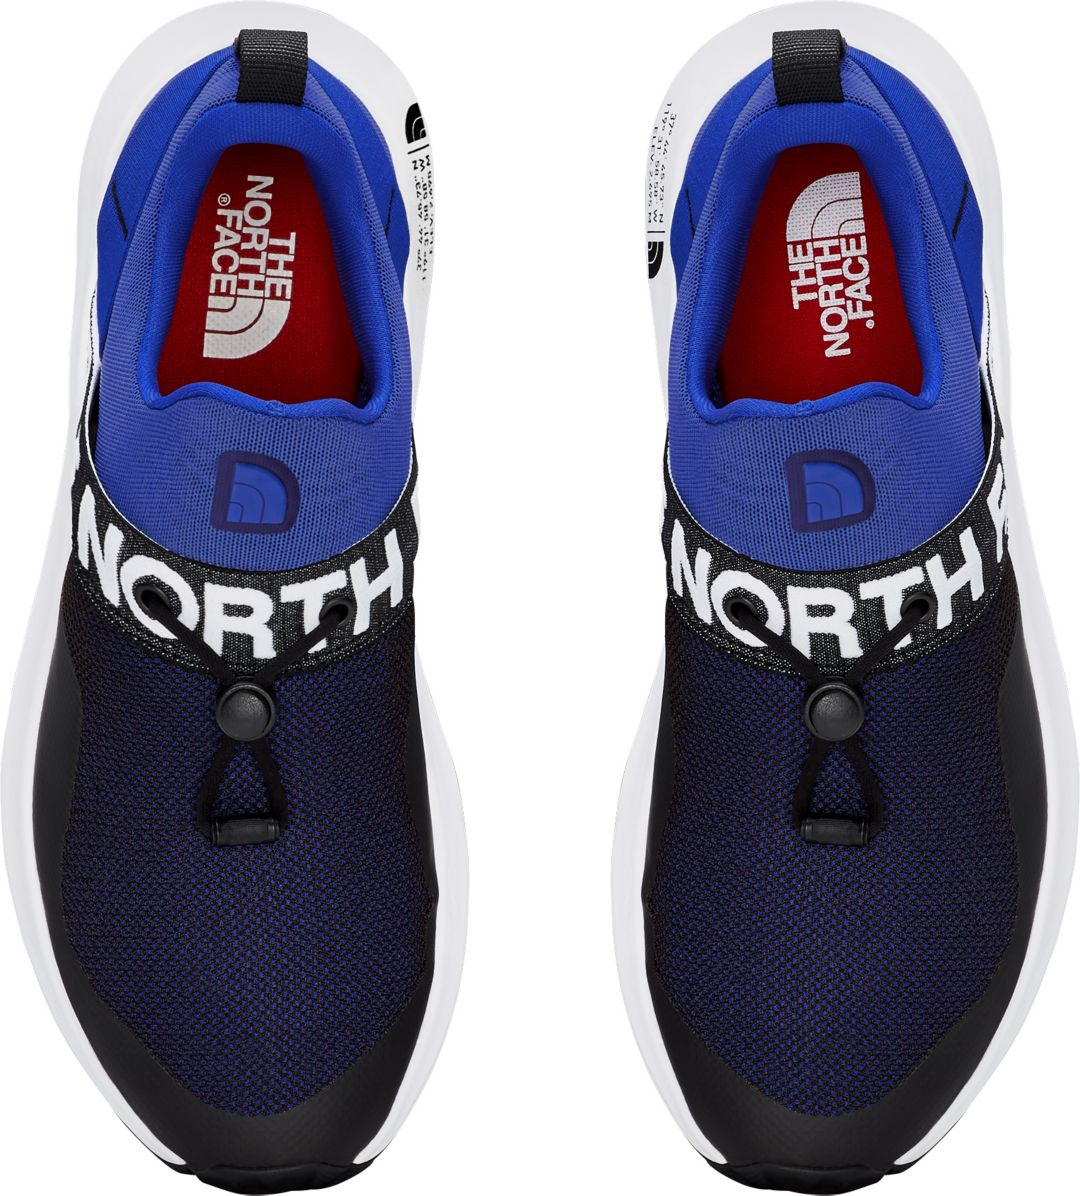 53f764025 The North Face Men's Surge Pelham Slip-On Casual Shoes